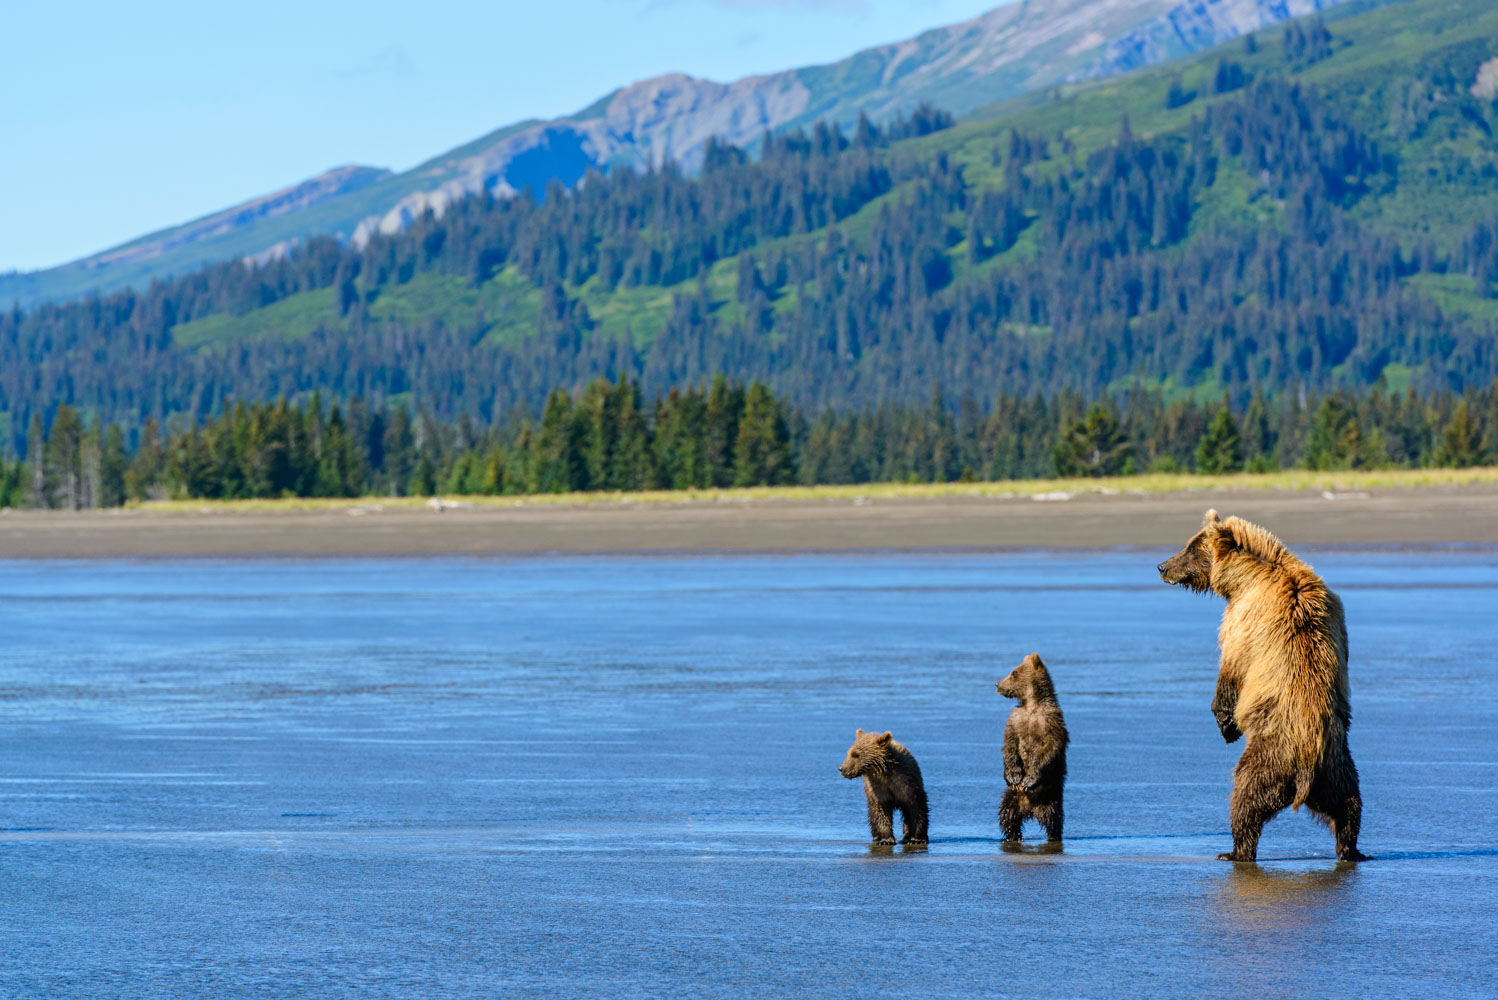 Mother and cubs digging for clams at Lake Clark National Park; Nikon D800E, 70–200mm, f/7, 1/1250s, ISO 400